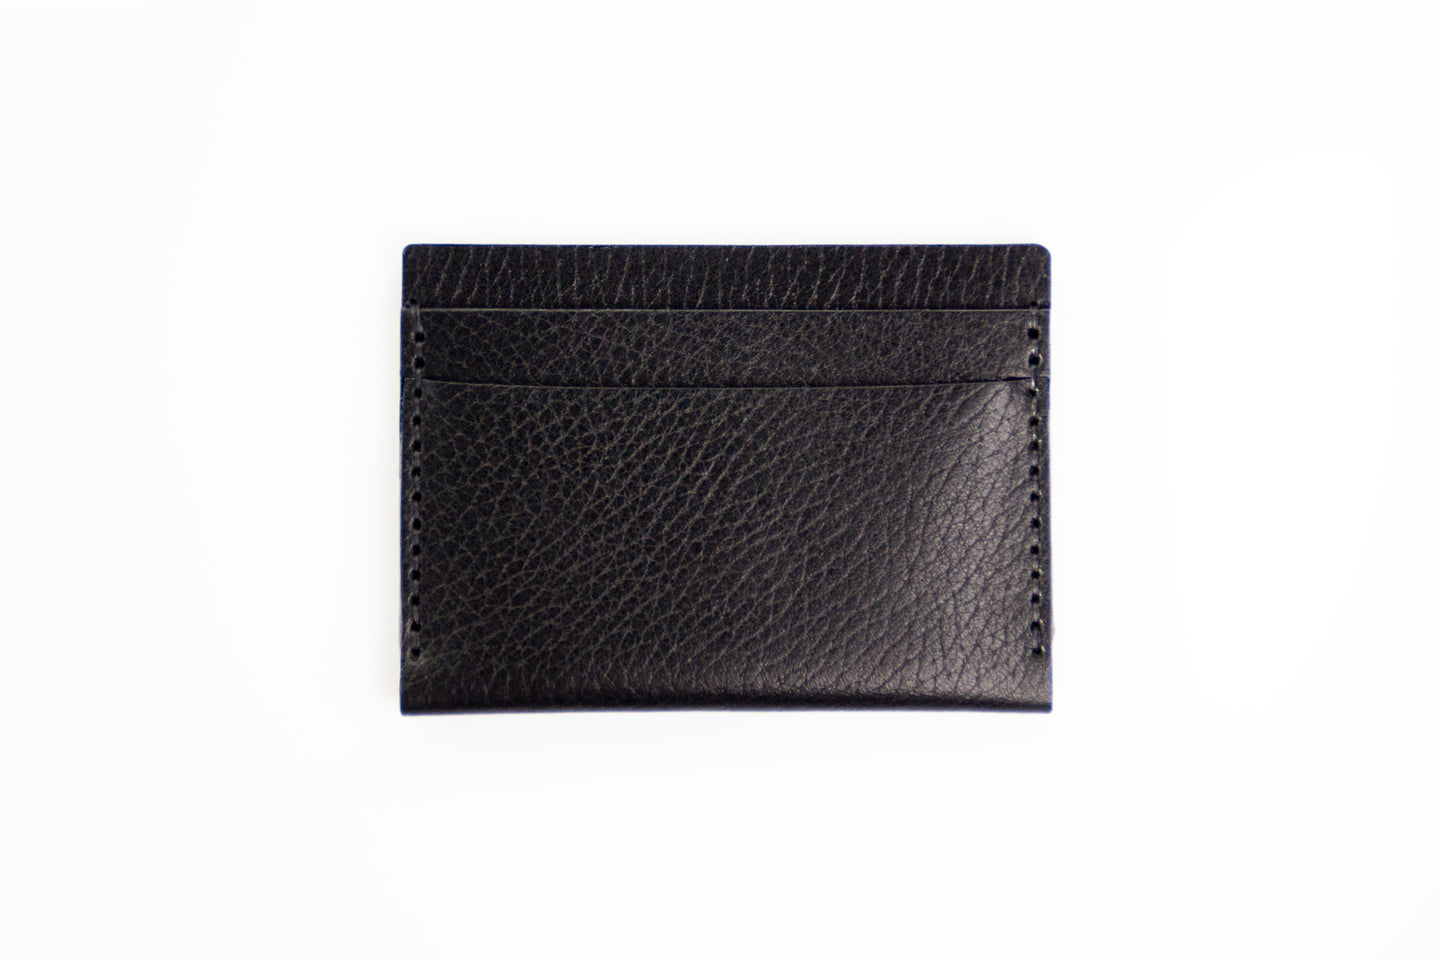 Orca Wallet | Milled Black,Wallets - Botton Studio